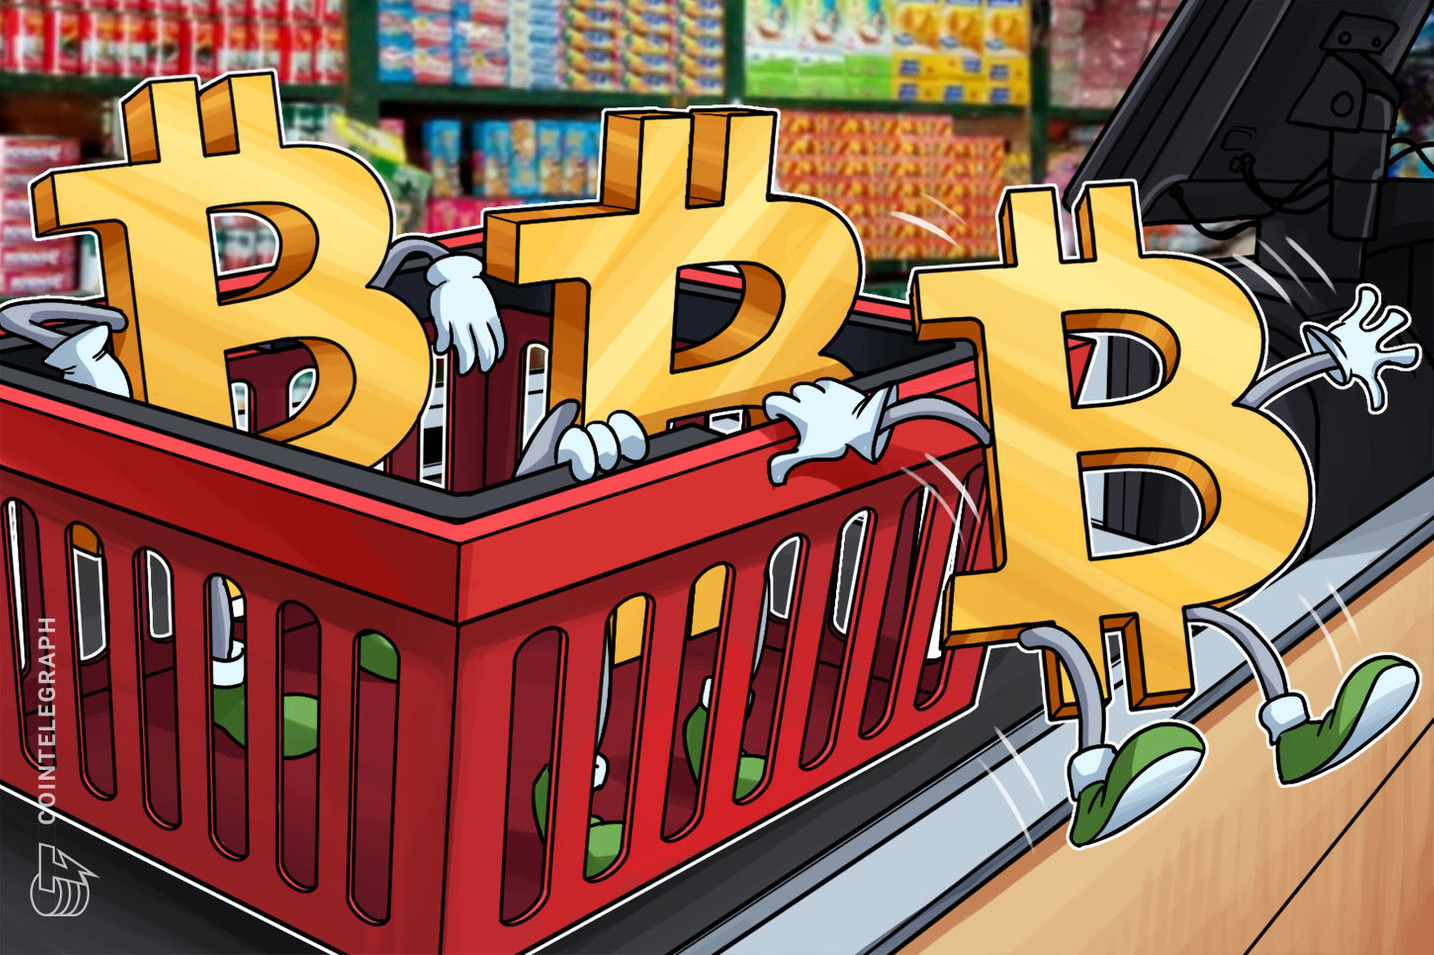 Lithuania: Narvesen Stores and Lithuanian Press Kiosks to Sell BTC